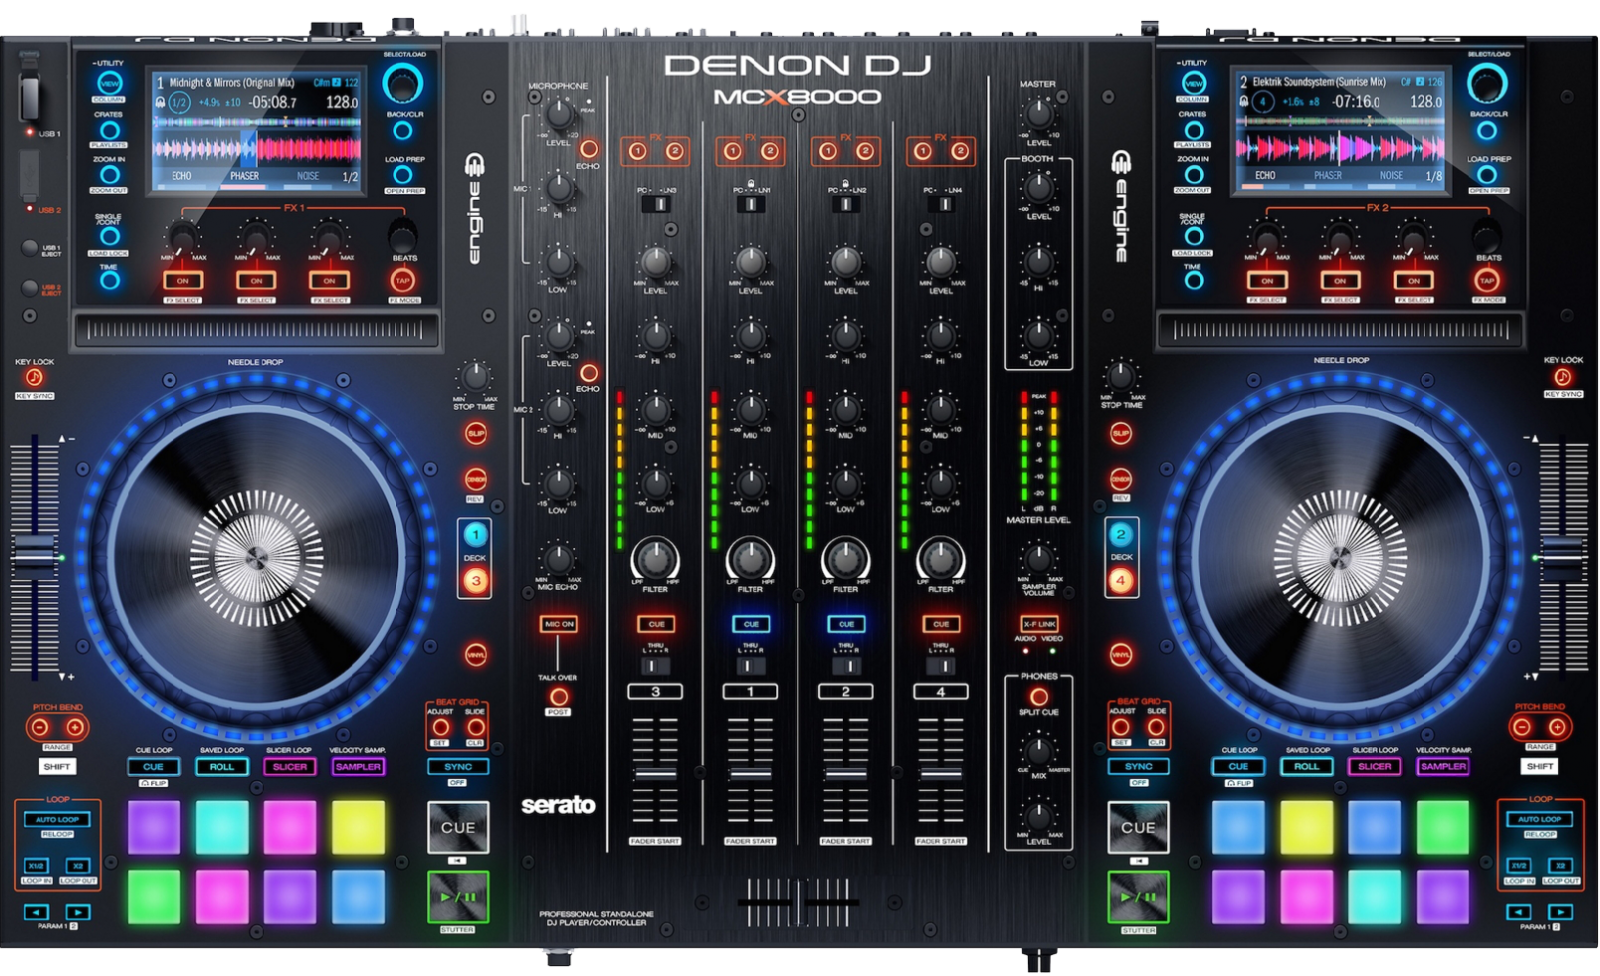 Denon DJ MCX8000 - Overview and Setup with Engine | Denon DJ